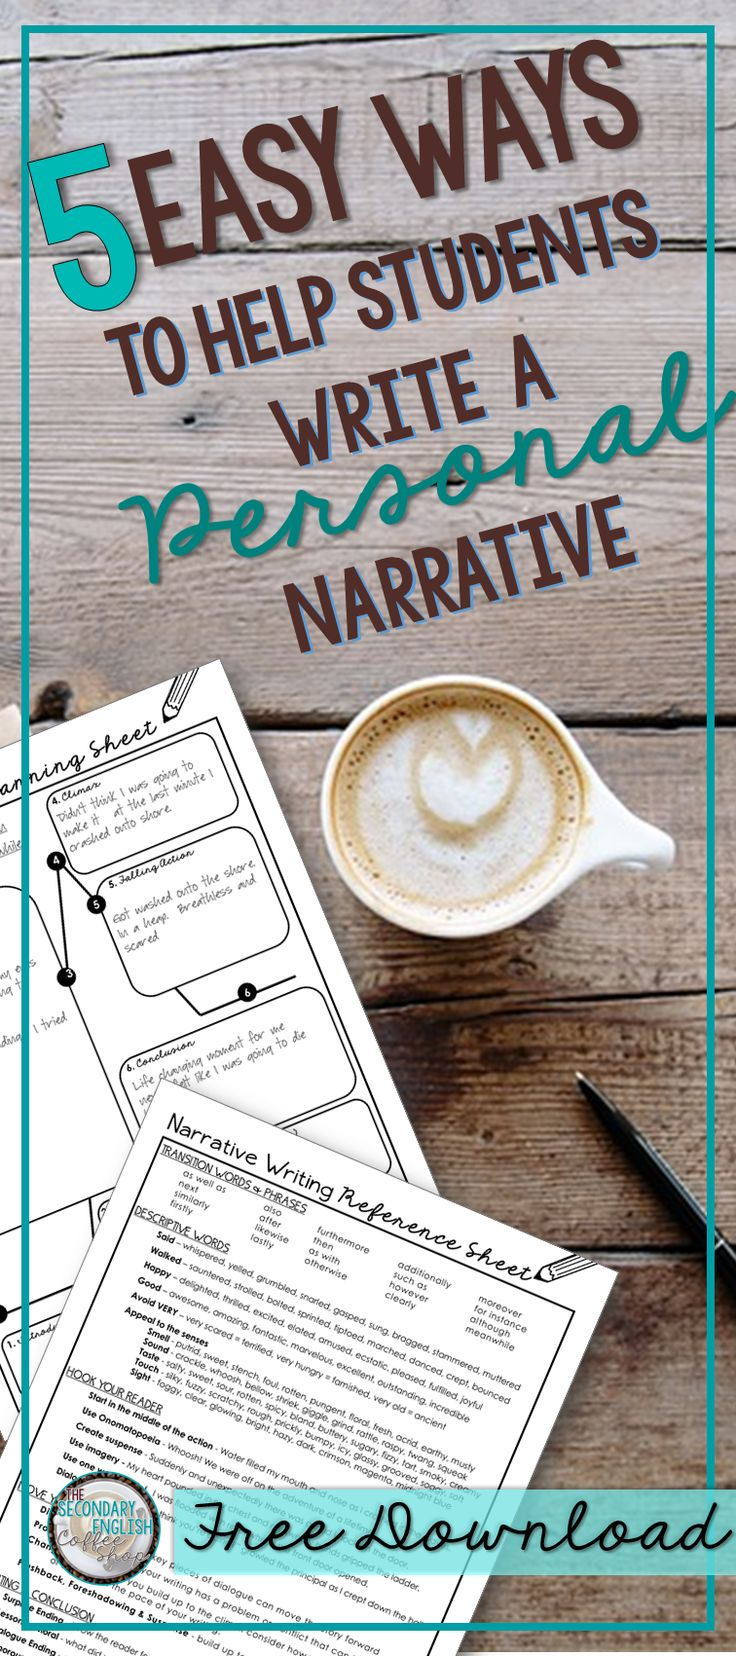 Five easy ways to help students write a Personal Narrative! Includes a free writing reference sheet and planning page for students!